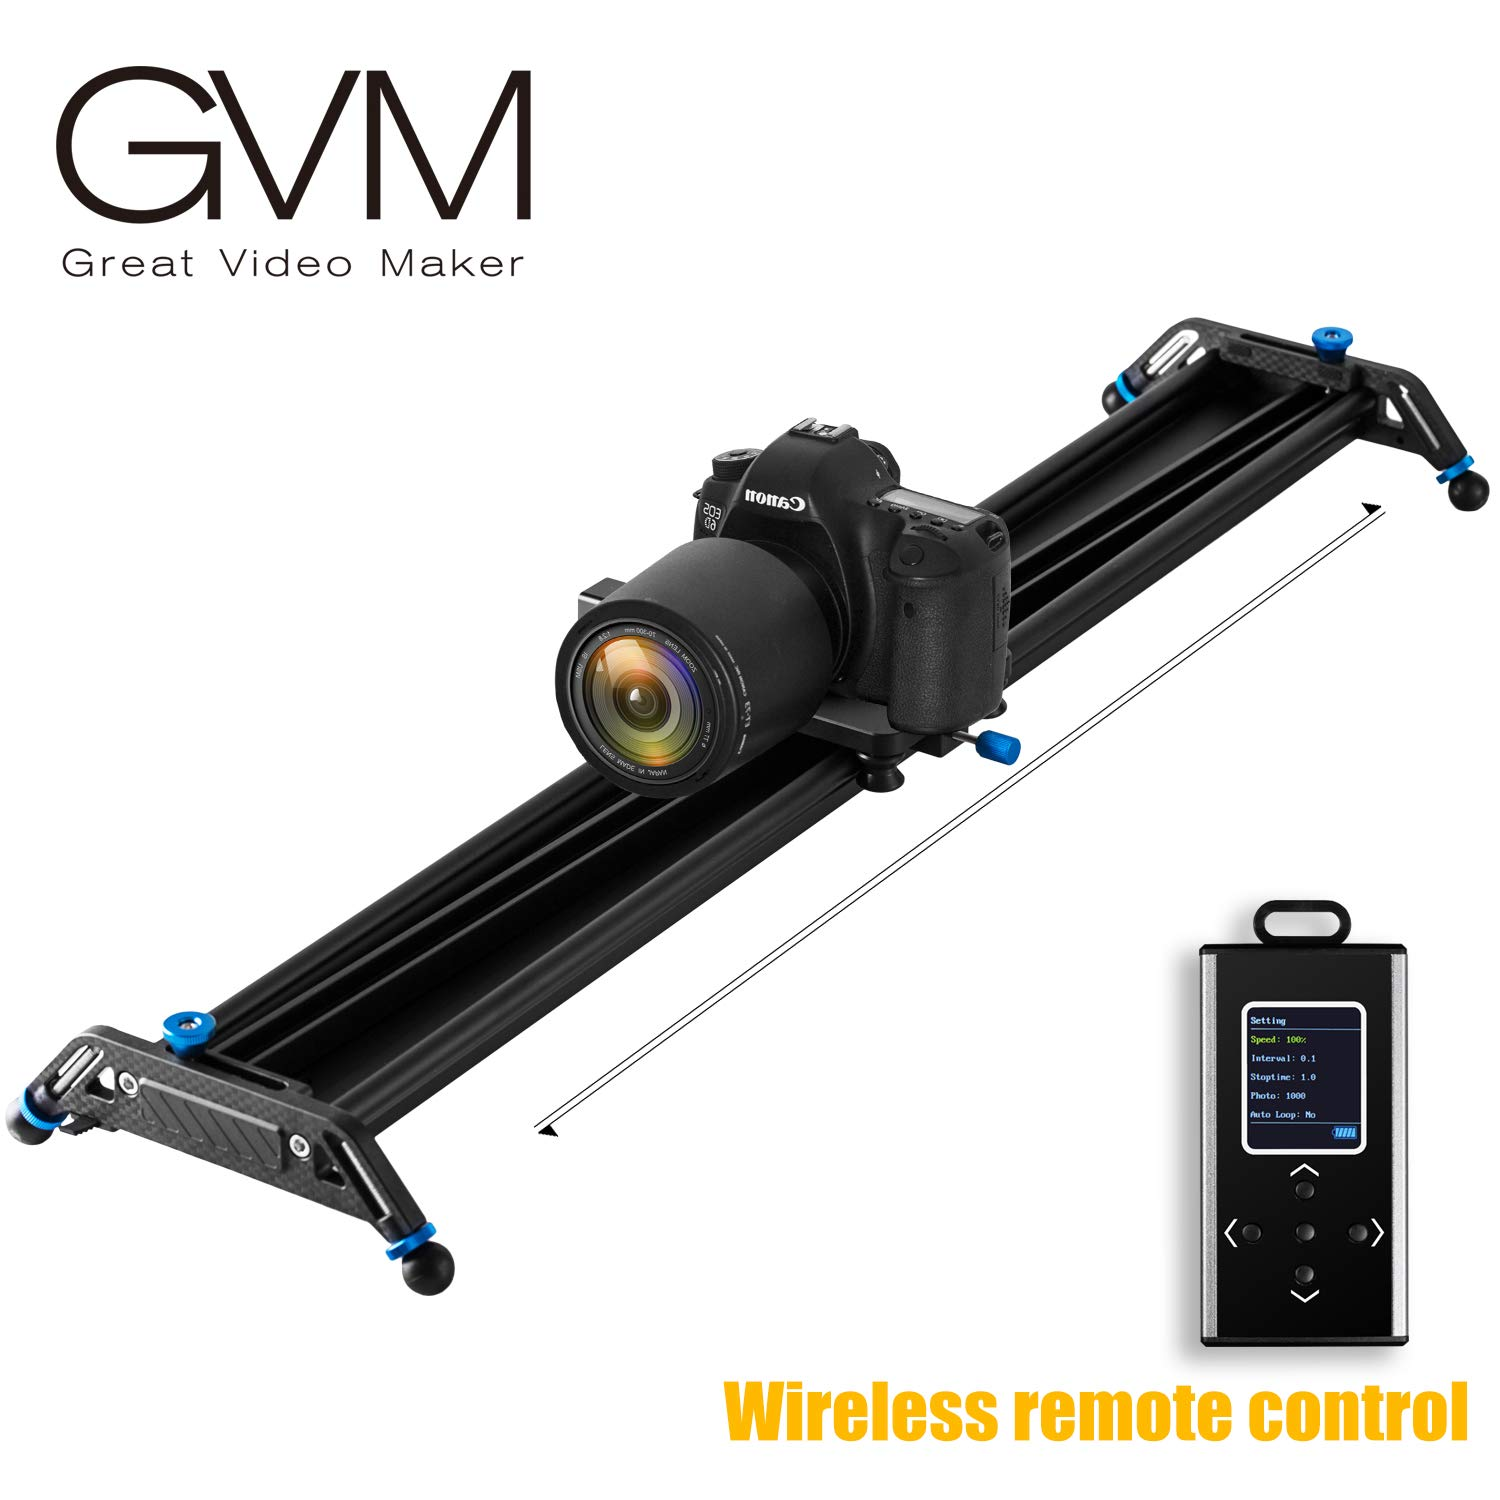 GVM Motorized Camera Sliders Track Dolly with Time Lapse Tracking and Wider Angle Video Stabilizer, Black 48''/120cm by A&J